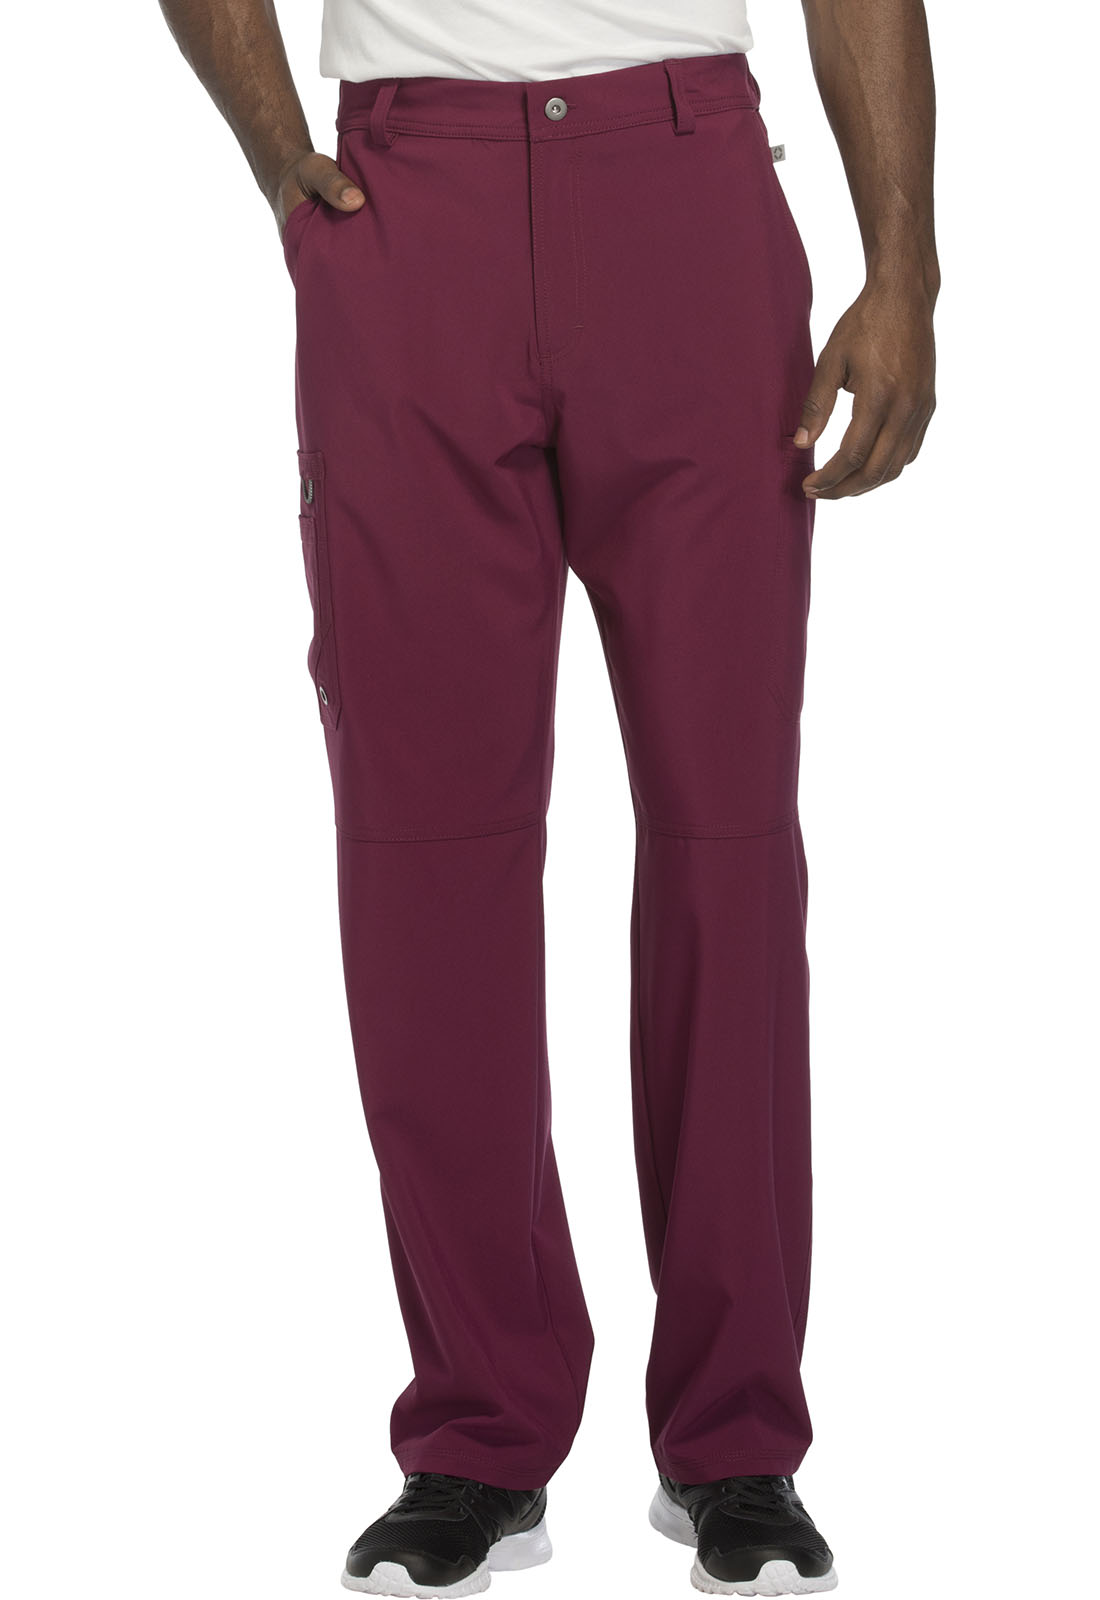 20c940342b3 Infinity Men's Fly Front Pant in Wine CK200A-WNPS from Trademark ...